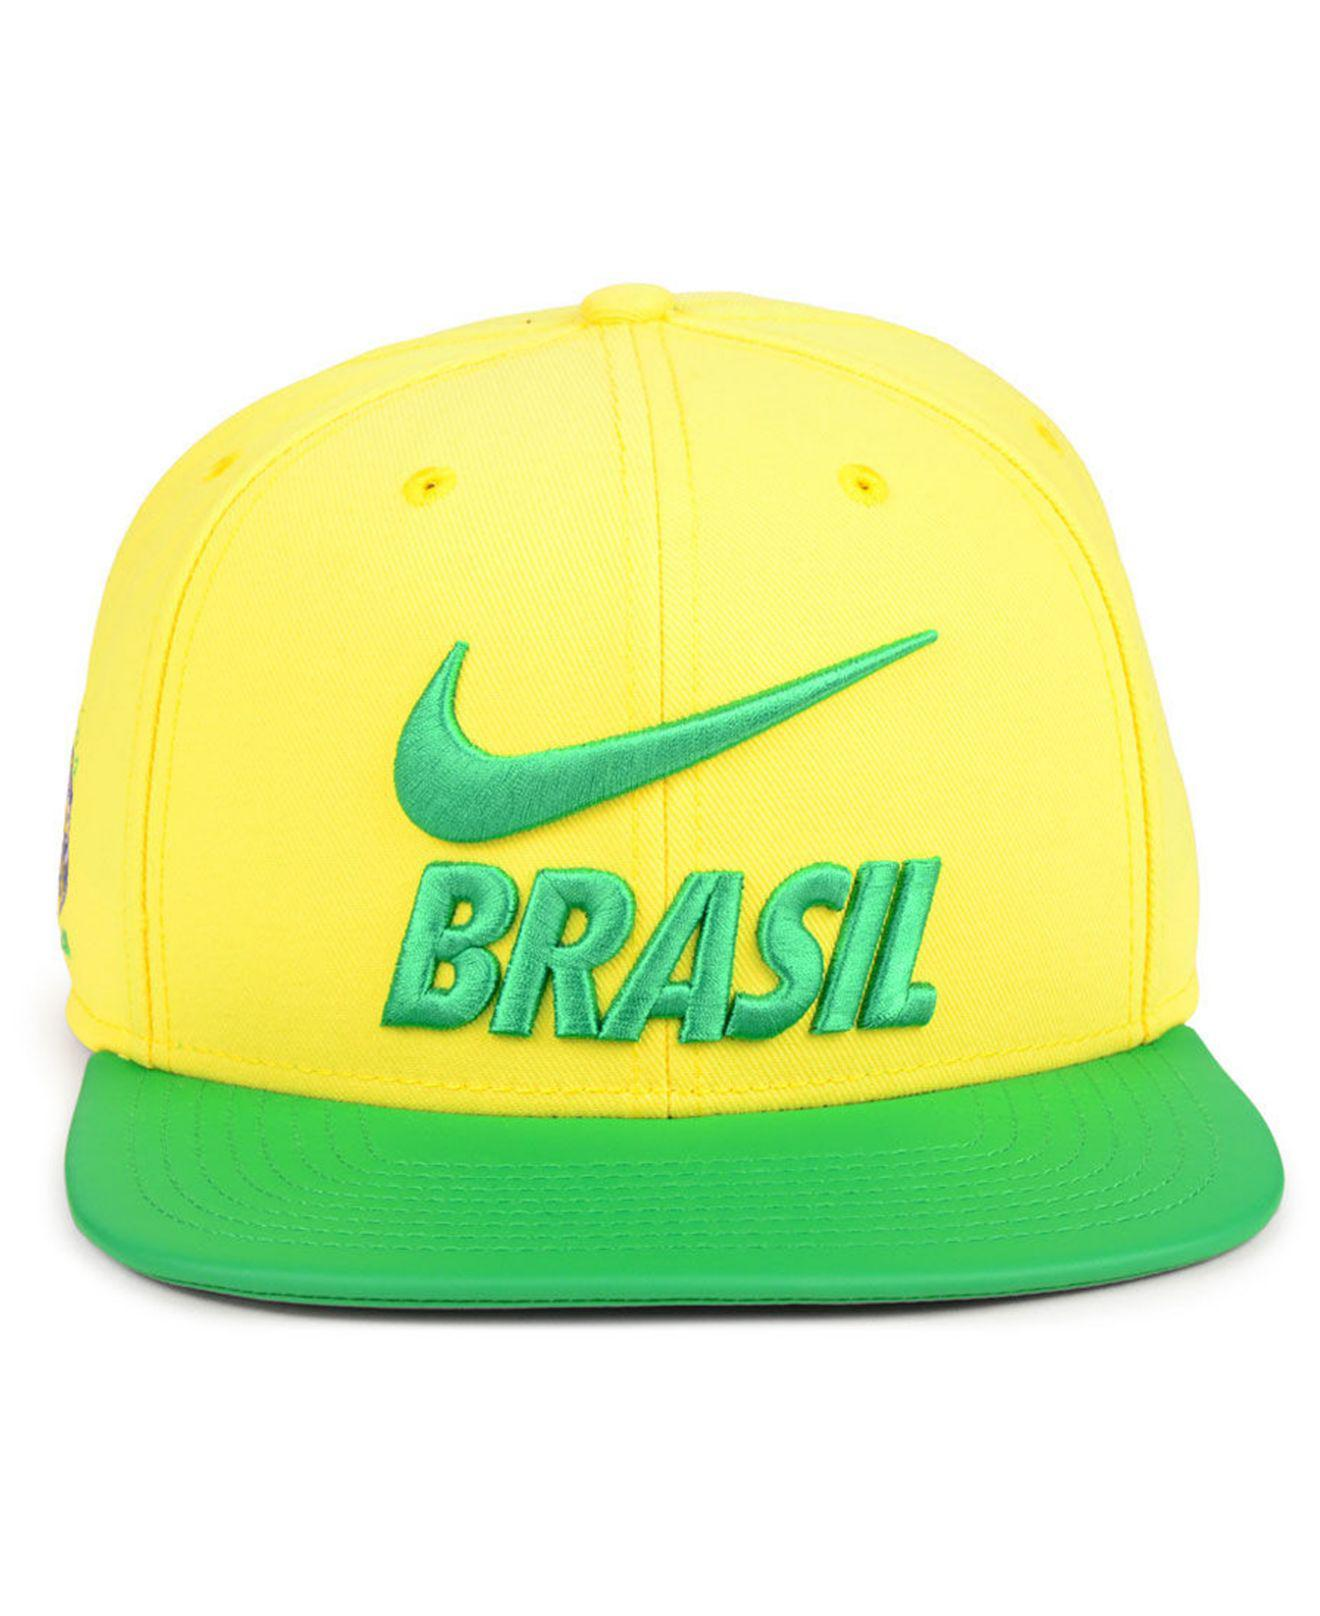 Lyst - Nike Brazil National Team Snapback Cap in Yellow for Men 17a8298ddcfd